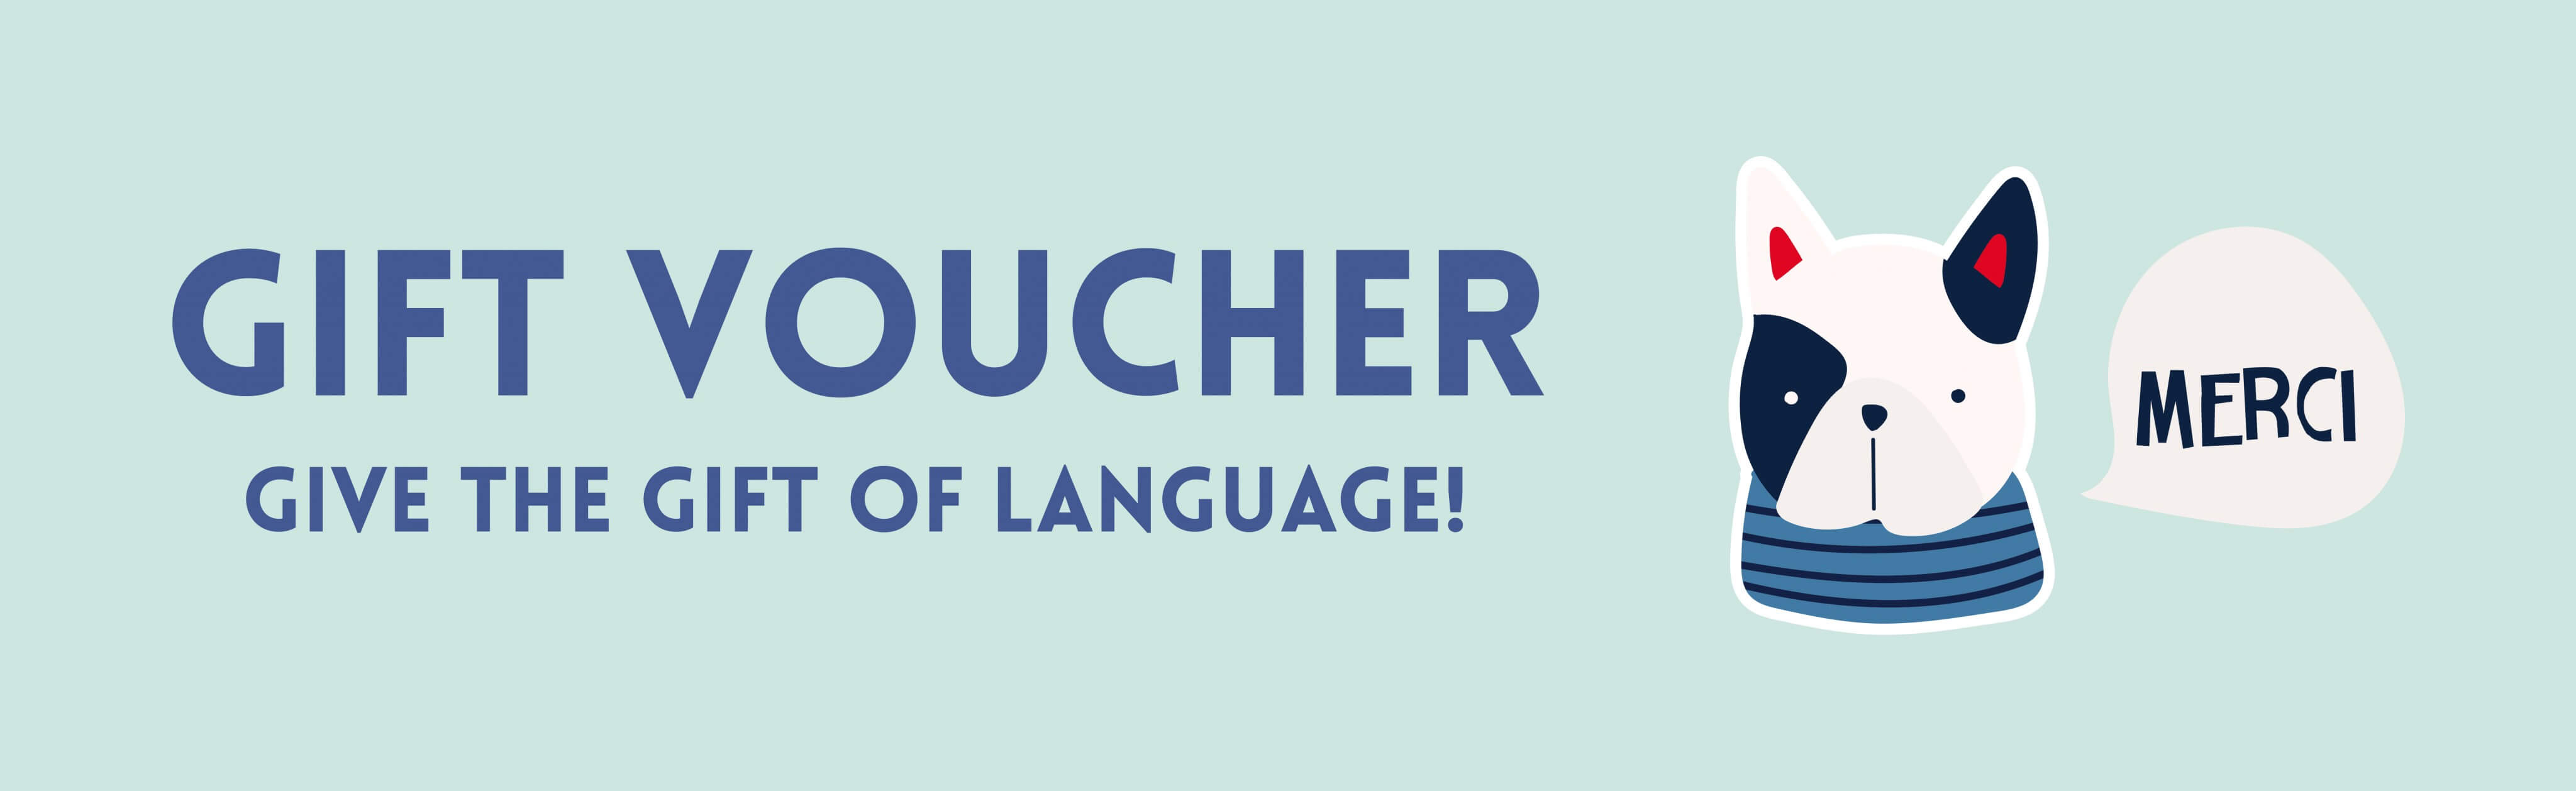 Gift Voucher Learn French